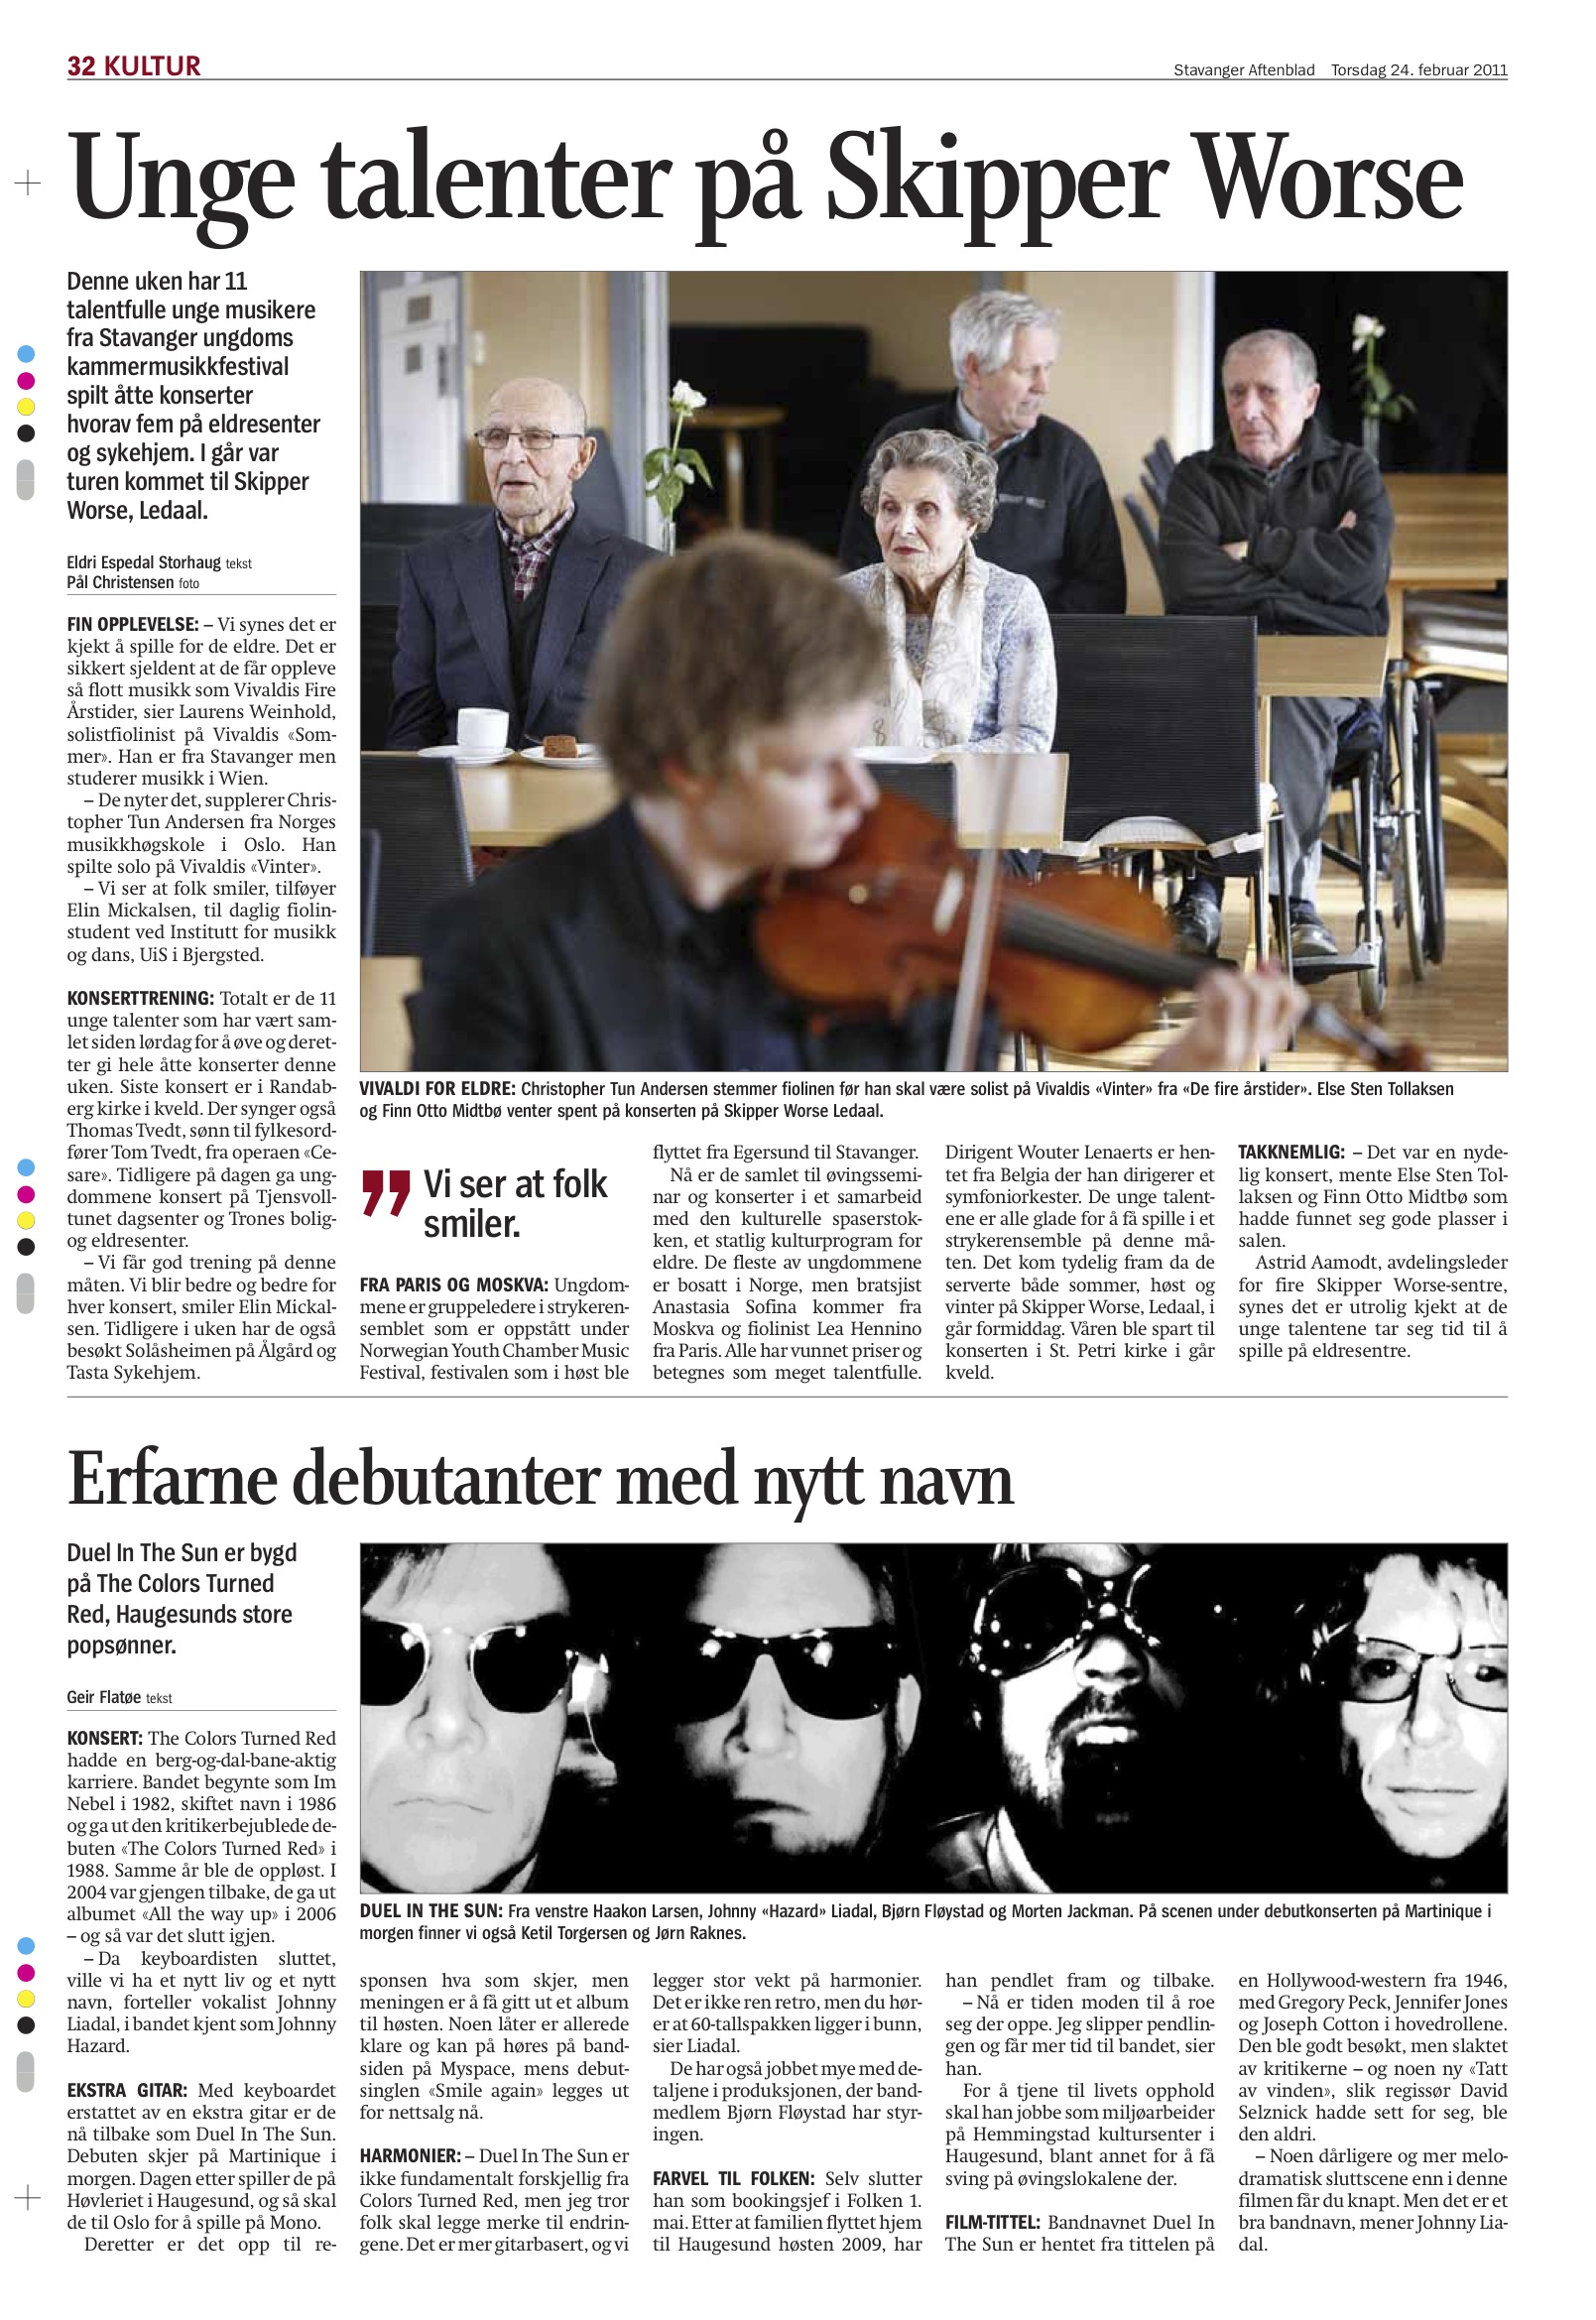 Stavanger Aftenblad, February 24th 2011